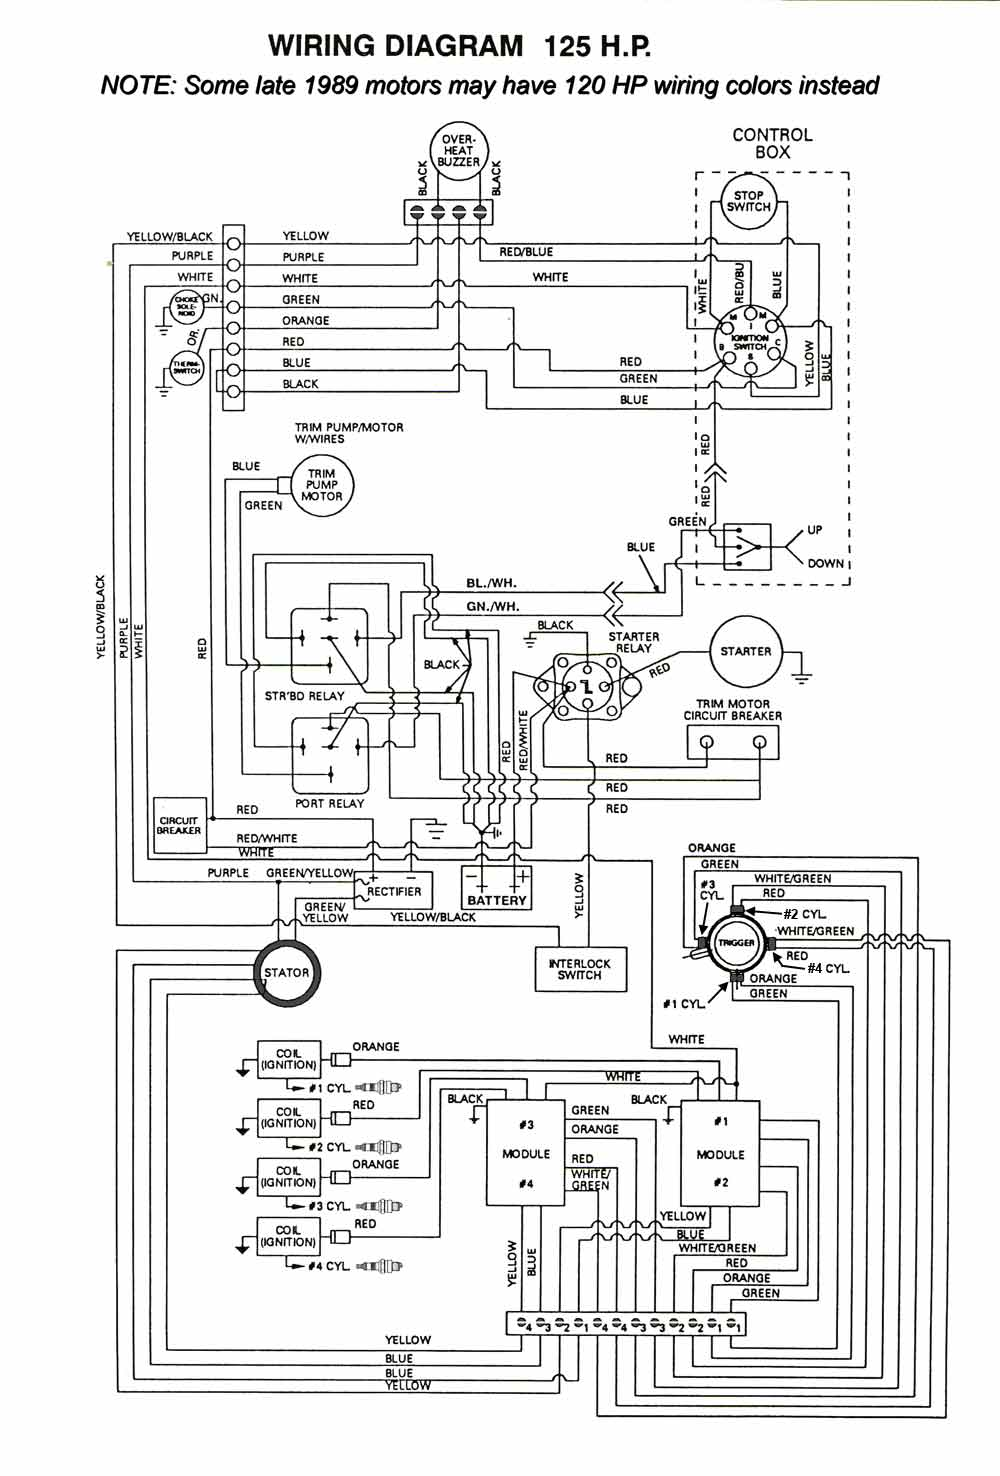 Wire Diagram 1993 Mercury Capri Wiring Diagrams Topaz Force 90 Hp Library Rh 3 Evitta De 1990 1975